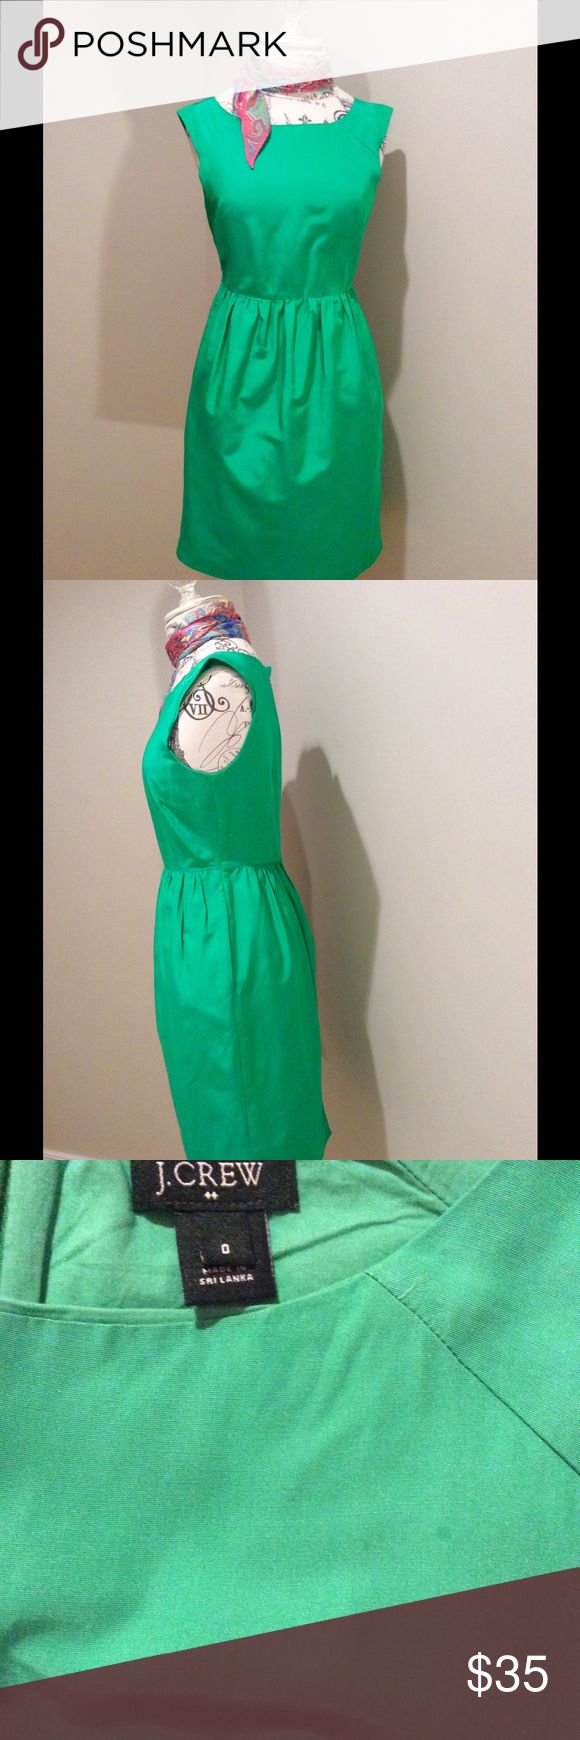 J Crew Factory Sleeveless Green Dress Emerald green cap sleeve dress is fitted through the bodice and waist.  Cap sleeve.  Zipper at the back. Worn only one of time. J. Crew Factory Dresses